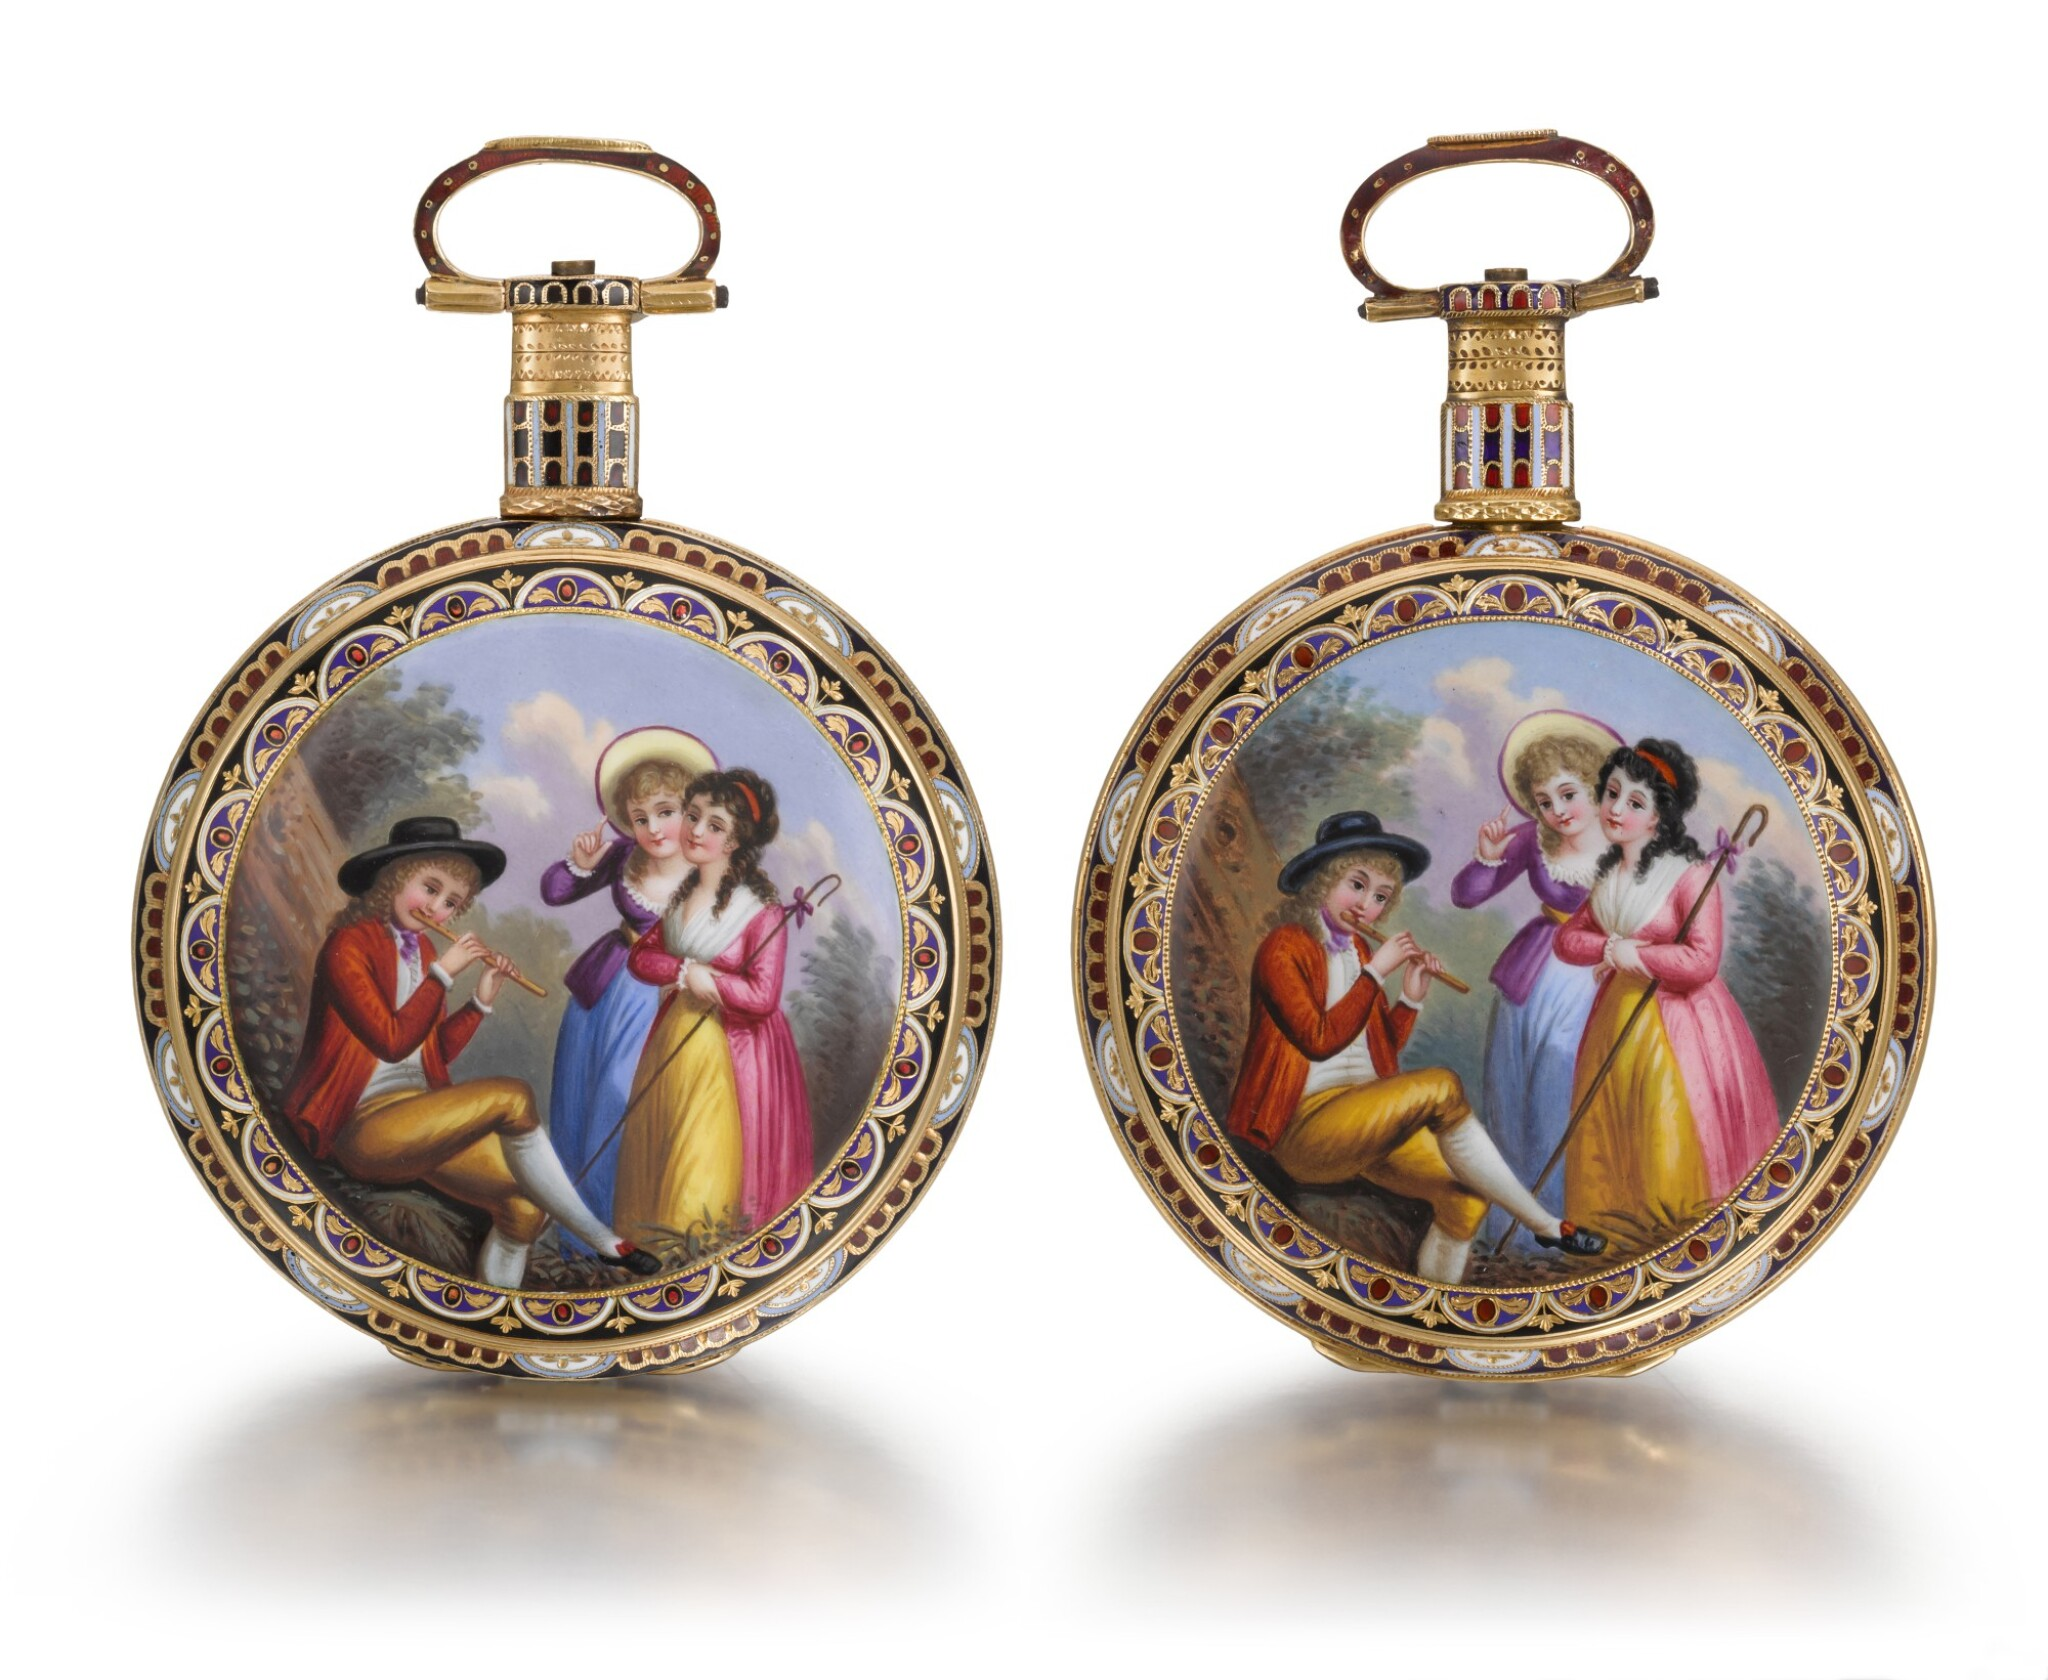 View full screen - View 1 of Lot 293. EDOUARD JUVET, FLEURIER | A MATCHED PAIR OF FINE GOLD AND ENAMEL OPEN-FACED WATCHES MADE FOR THE CHINESE MARKET, CIRCA 1865, NO. 41981 AND 42308.